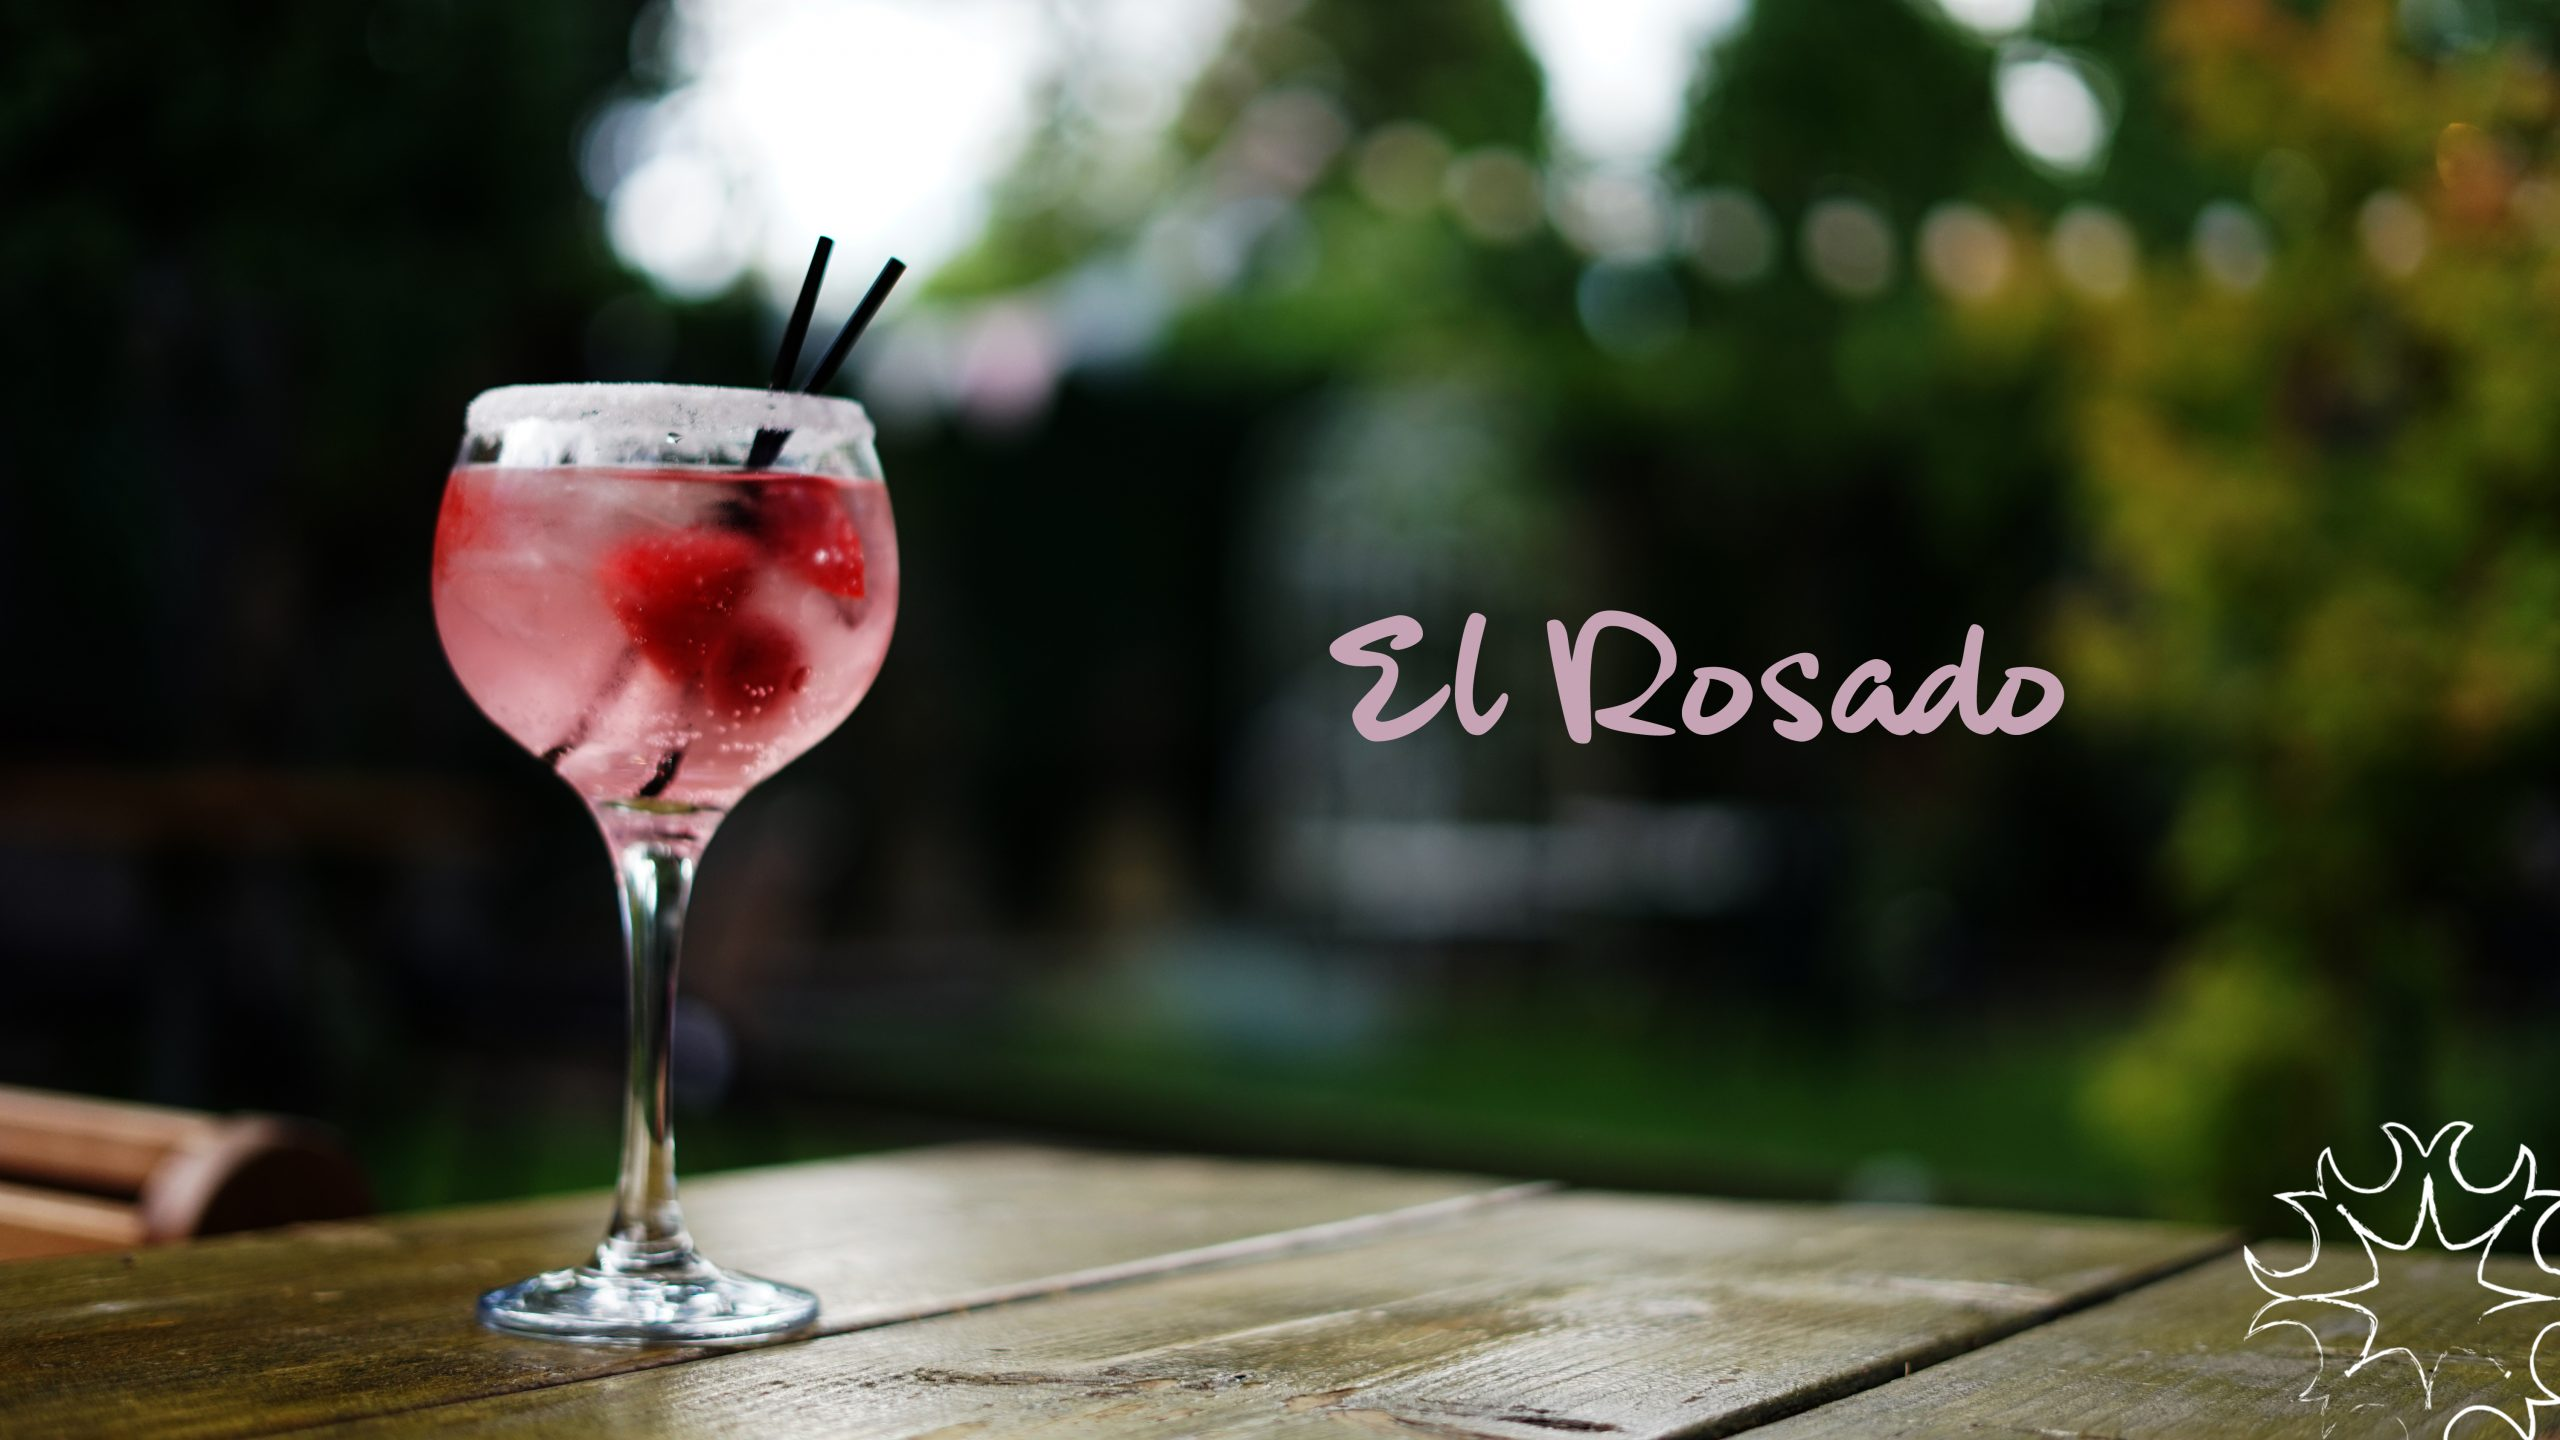 El Rosado Cocktail